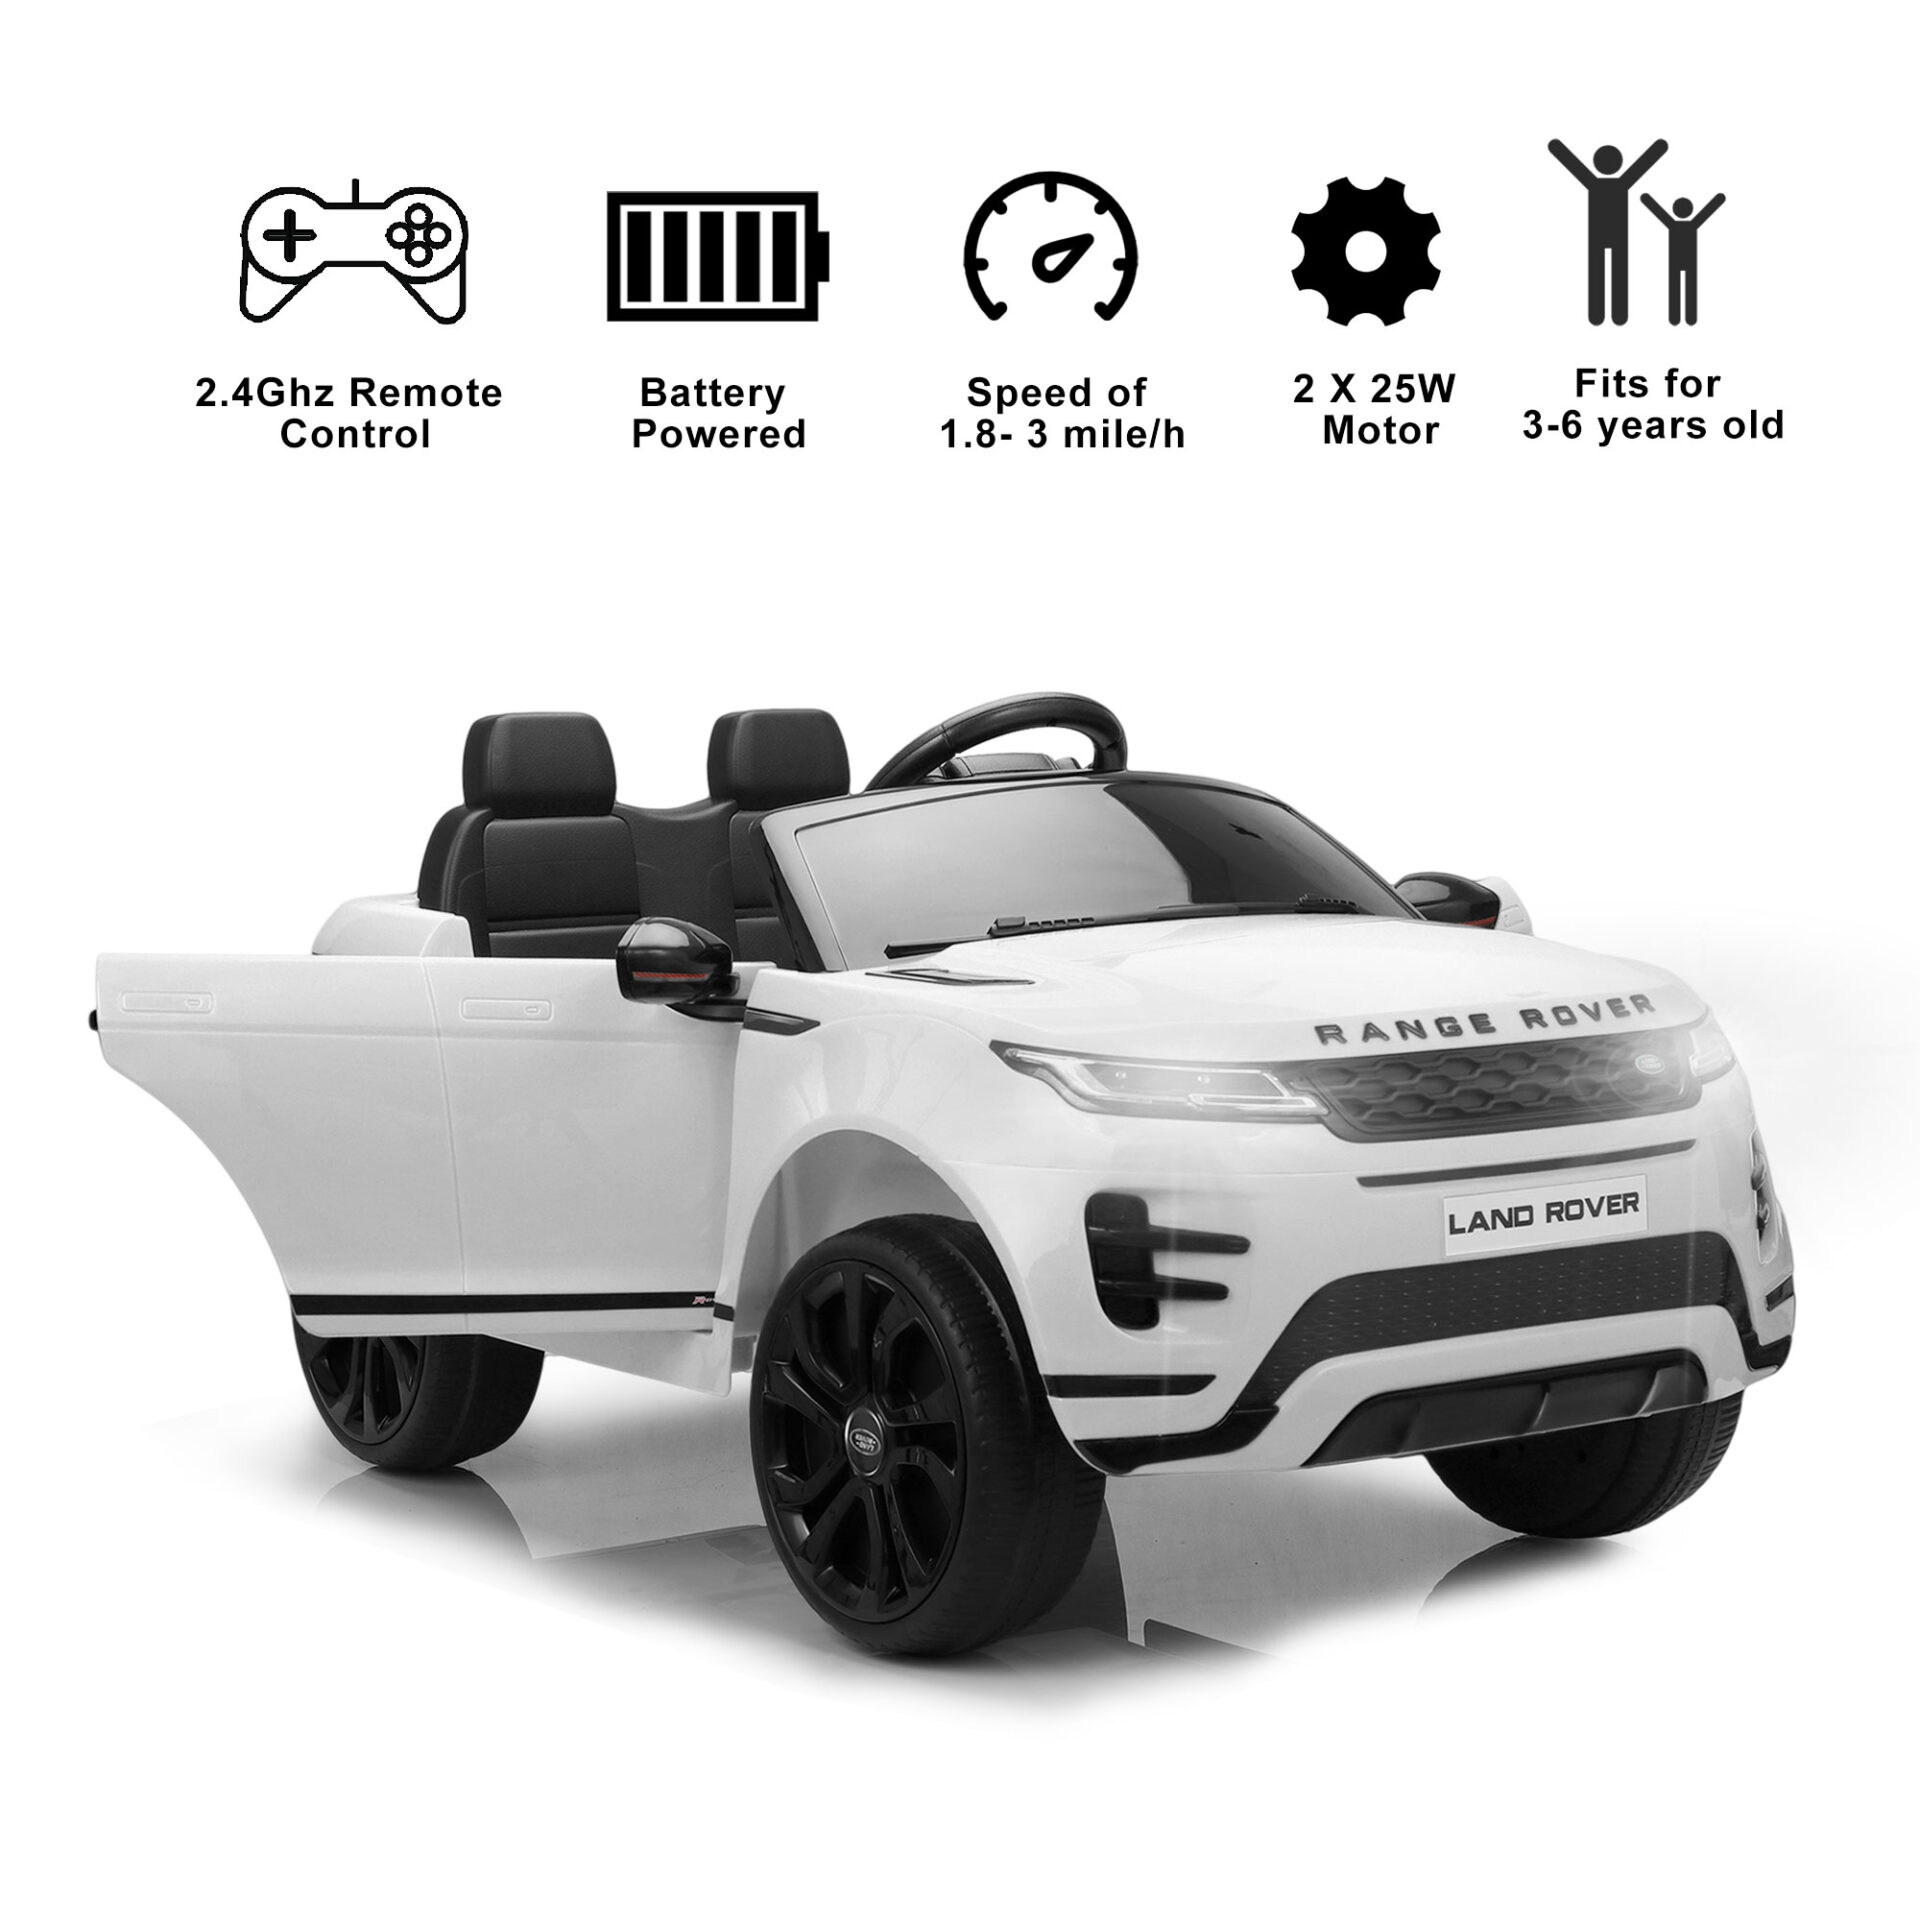 12V Land Rover Kids Power Wheels Ride On Toys With Remote, White TH17T0620 zt52 1